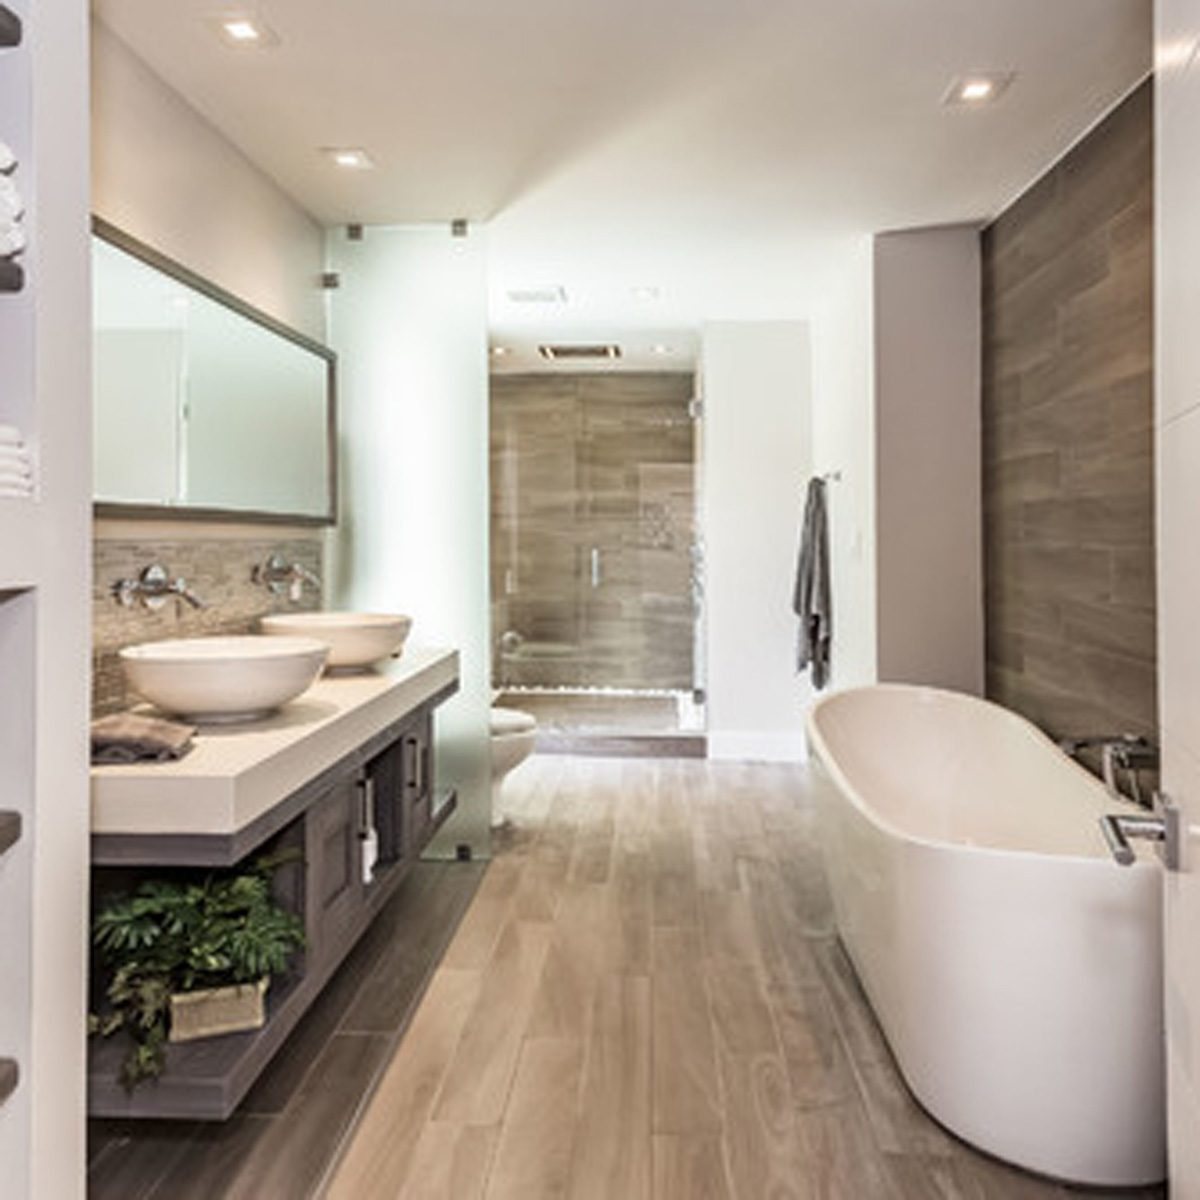 Re Tiling A Bathroom Floor: 12 Bathroom Trends On The Way Out